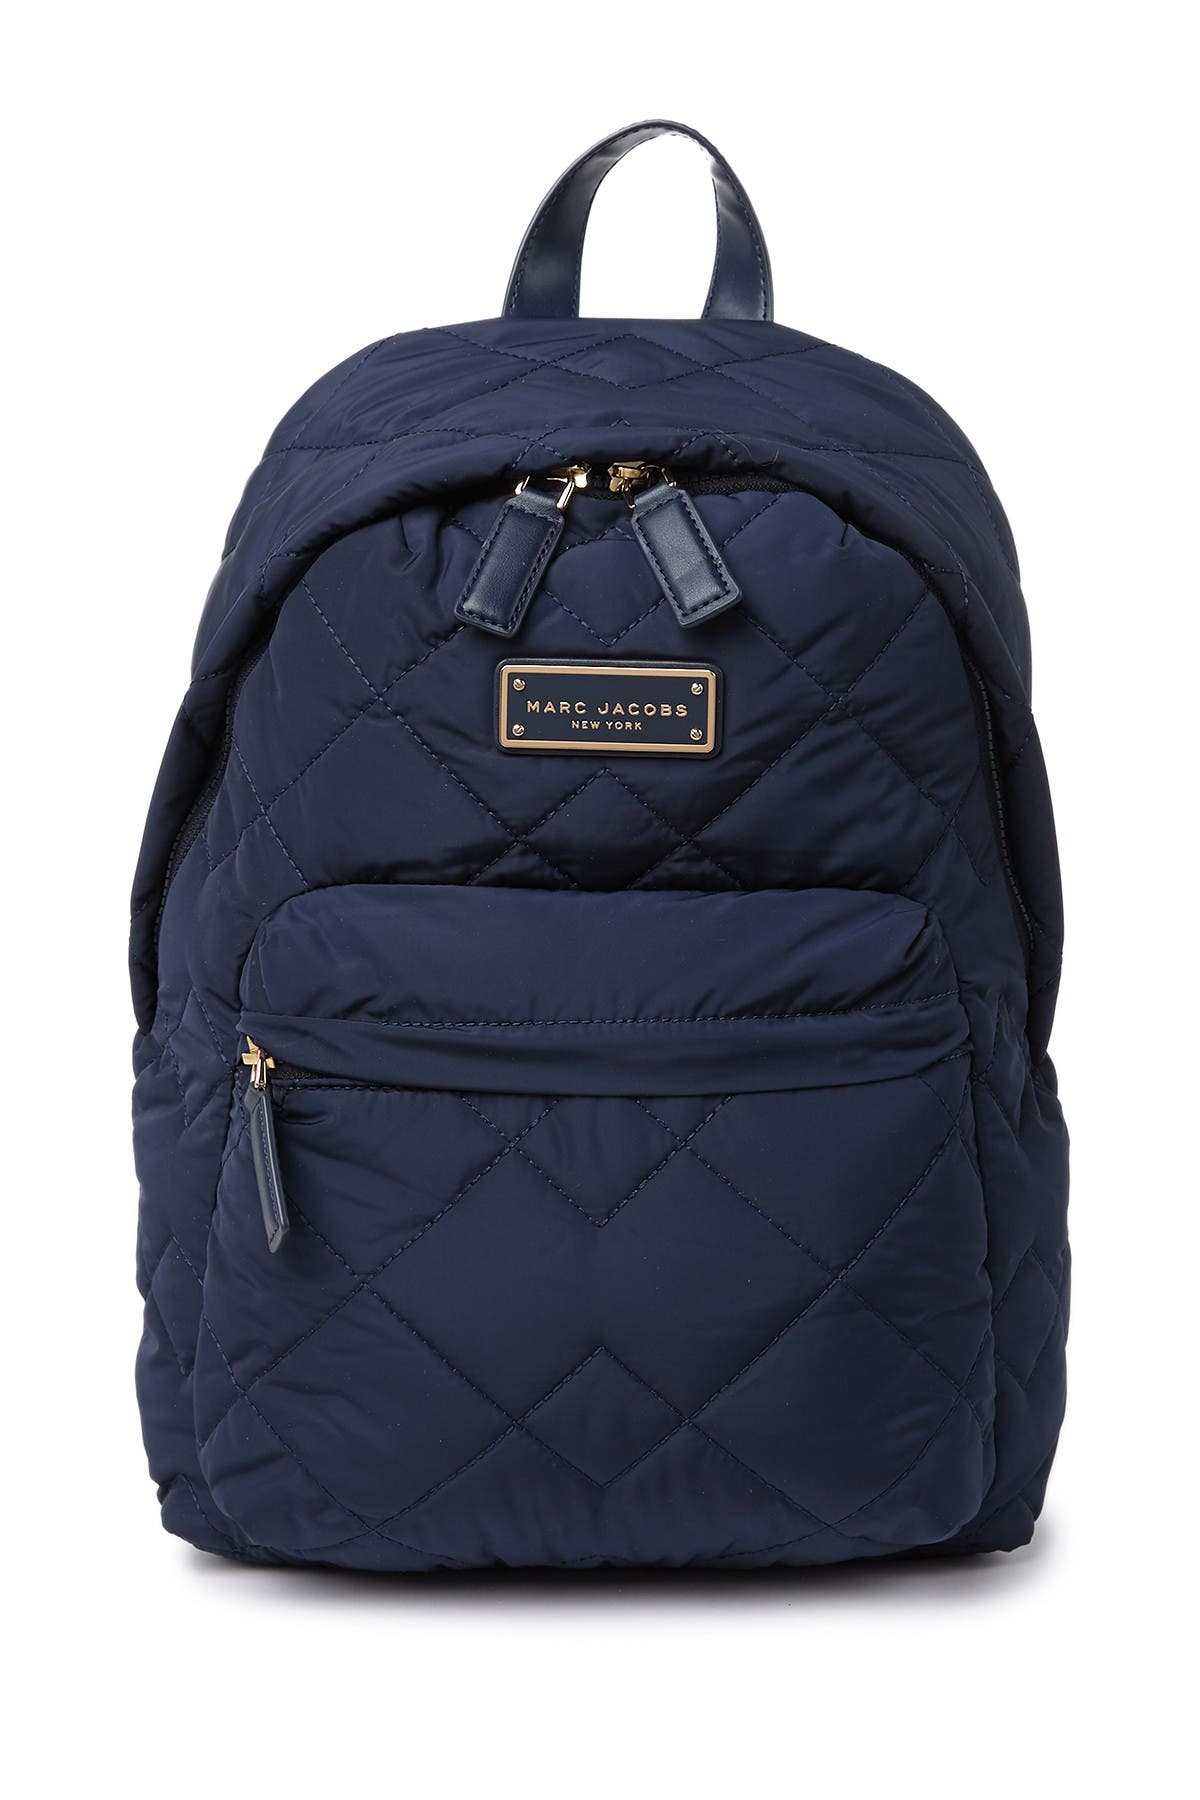 Image of Marc Jacobs Quilted Nylon School Backpack